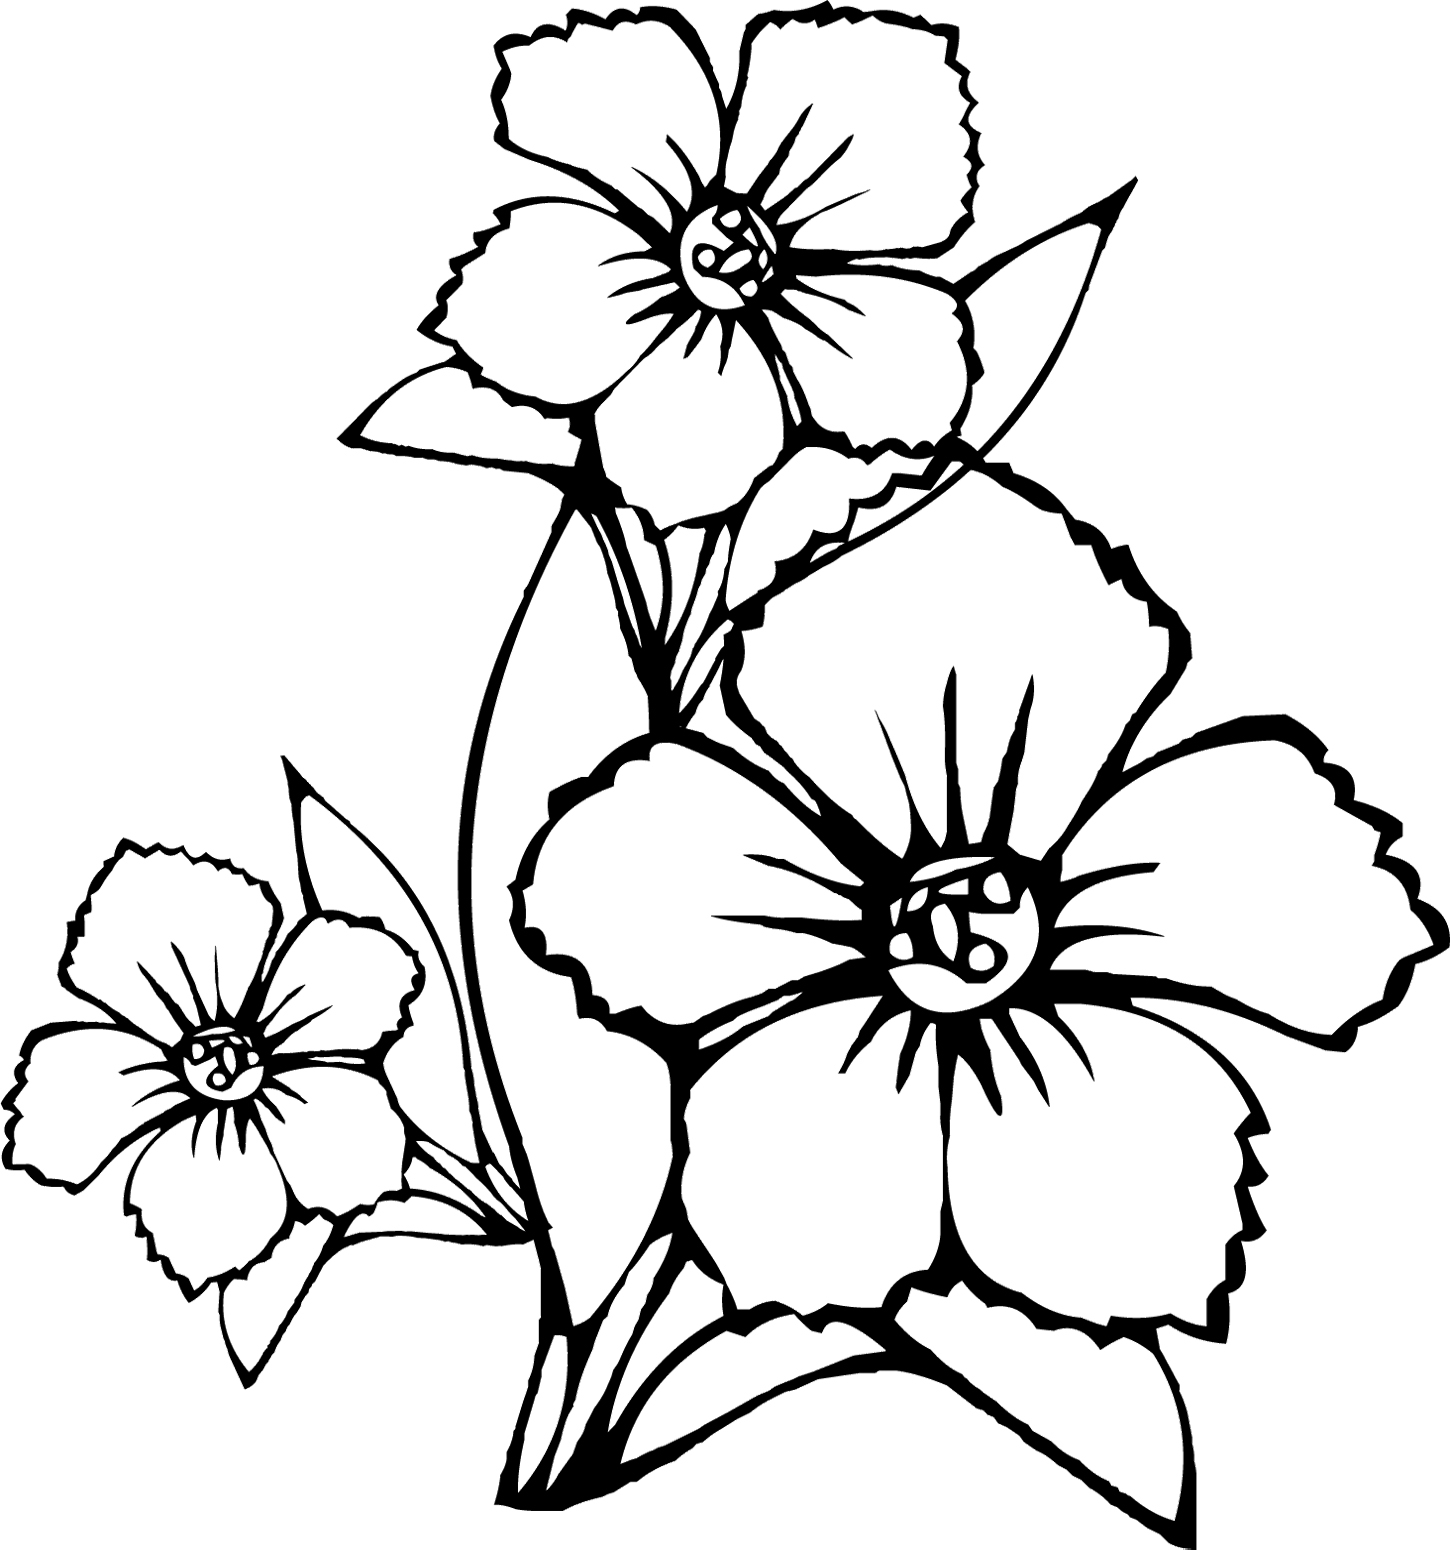 Easy Drawing Roses at GetDrawings.com | Free for personal use Easy ...